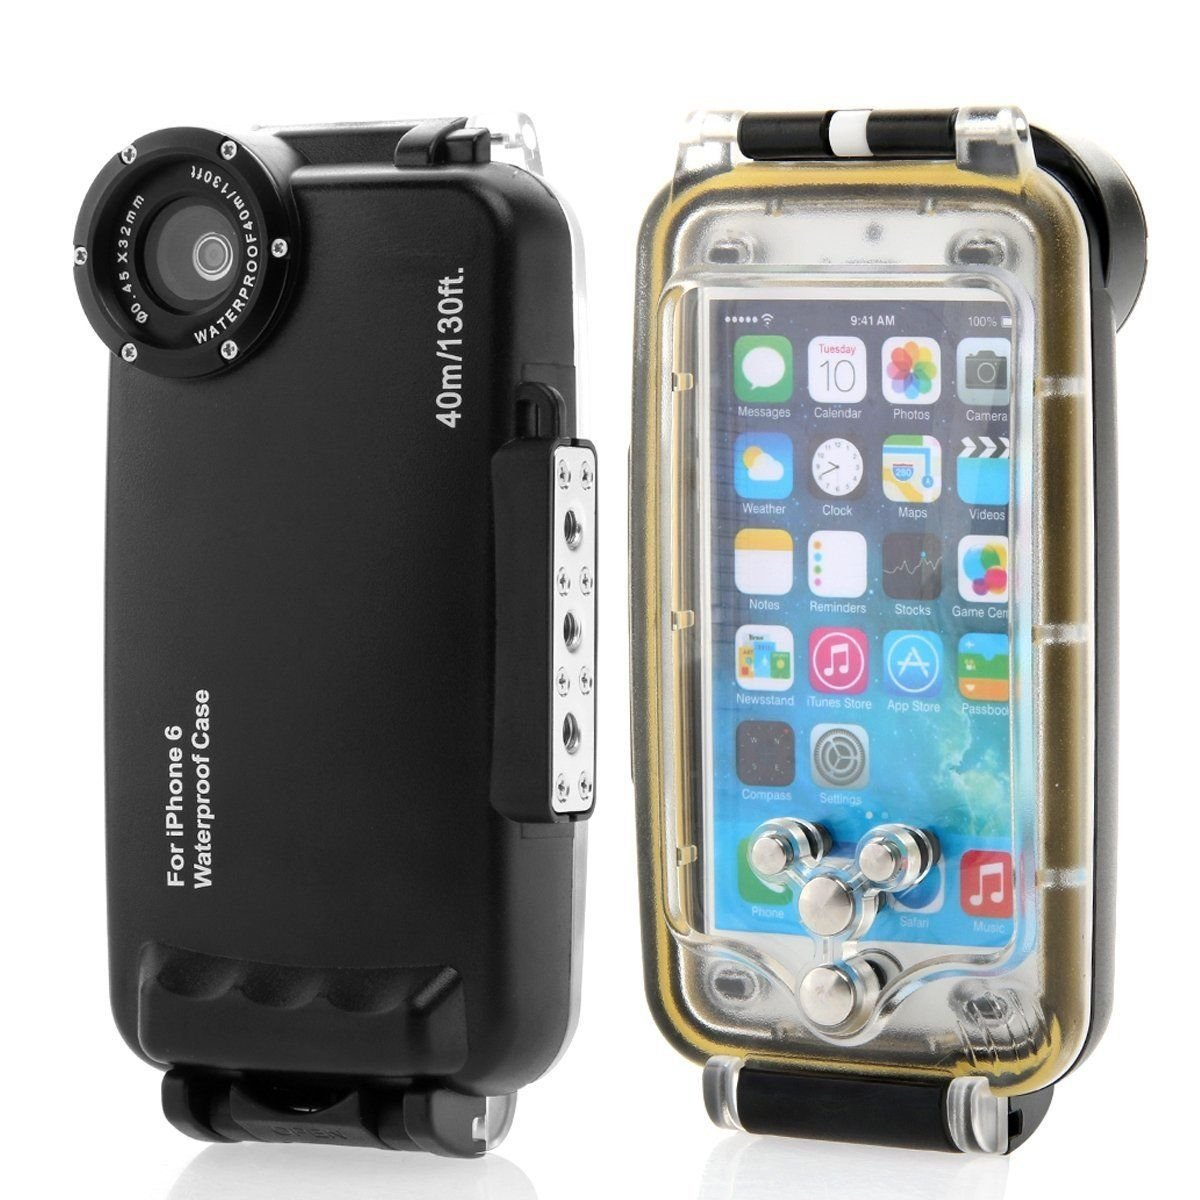 HolaFoto MEIKON Hight Quality 40m 130ft Rated Dive Professional Submersible Underwater Photo Video Camera Waterproof Photo Housing Diving Swimming Skin Protective Case Cover for Apple iPhone 6 4.7'' by HolaFoto (Image #2)